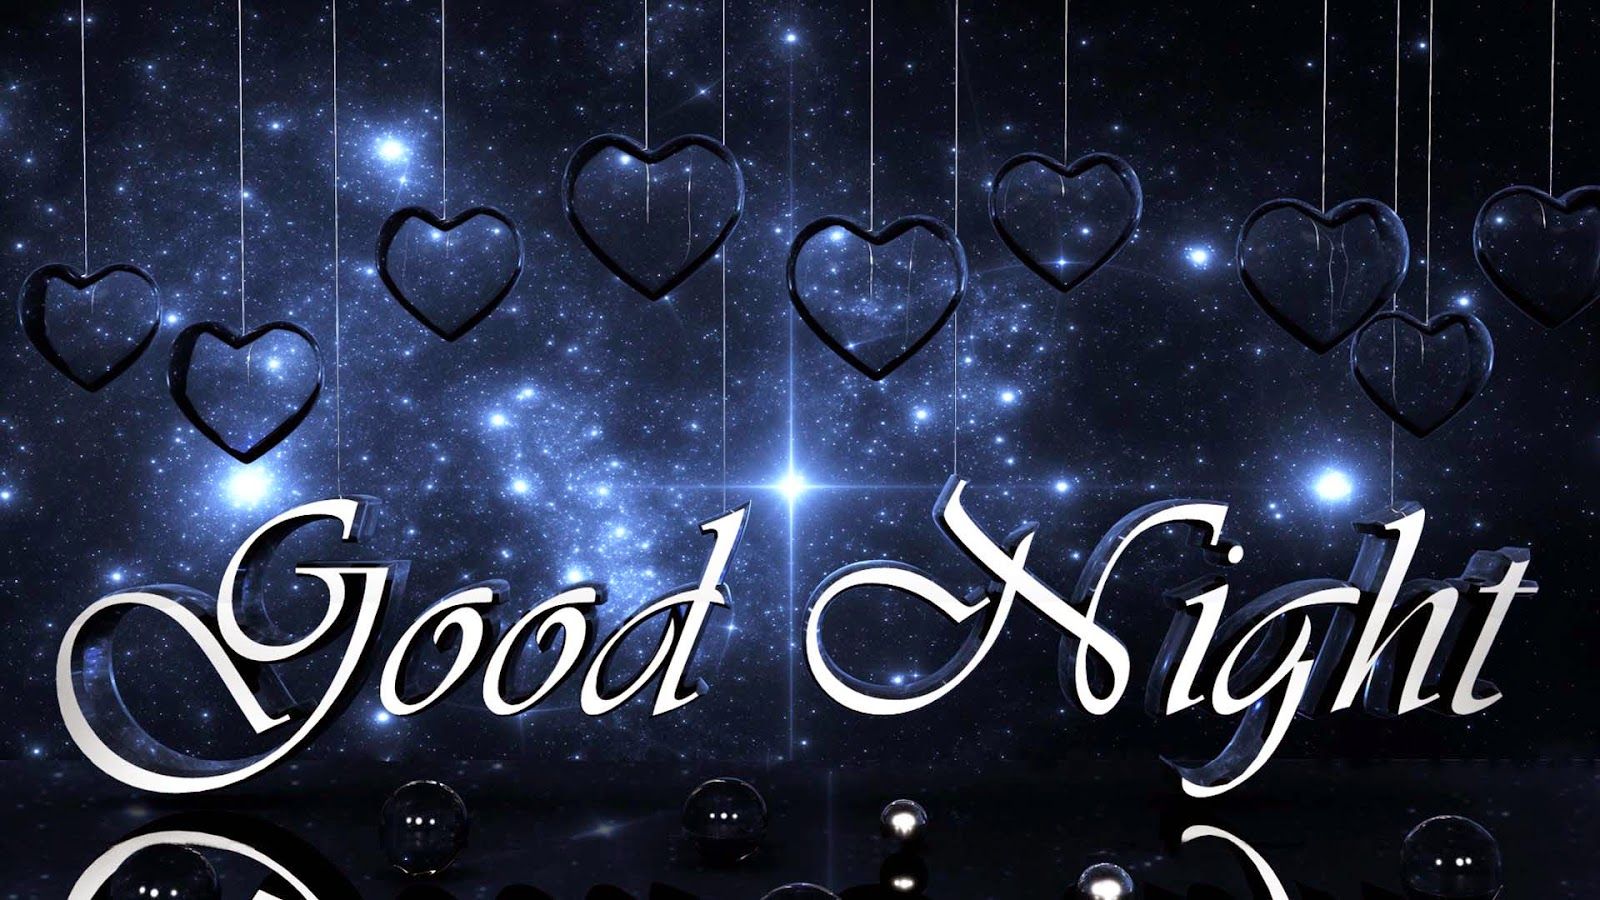 Good night wallpapers high quality download free voltagebd Images